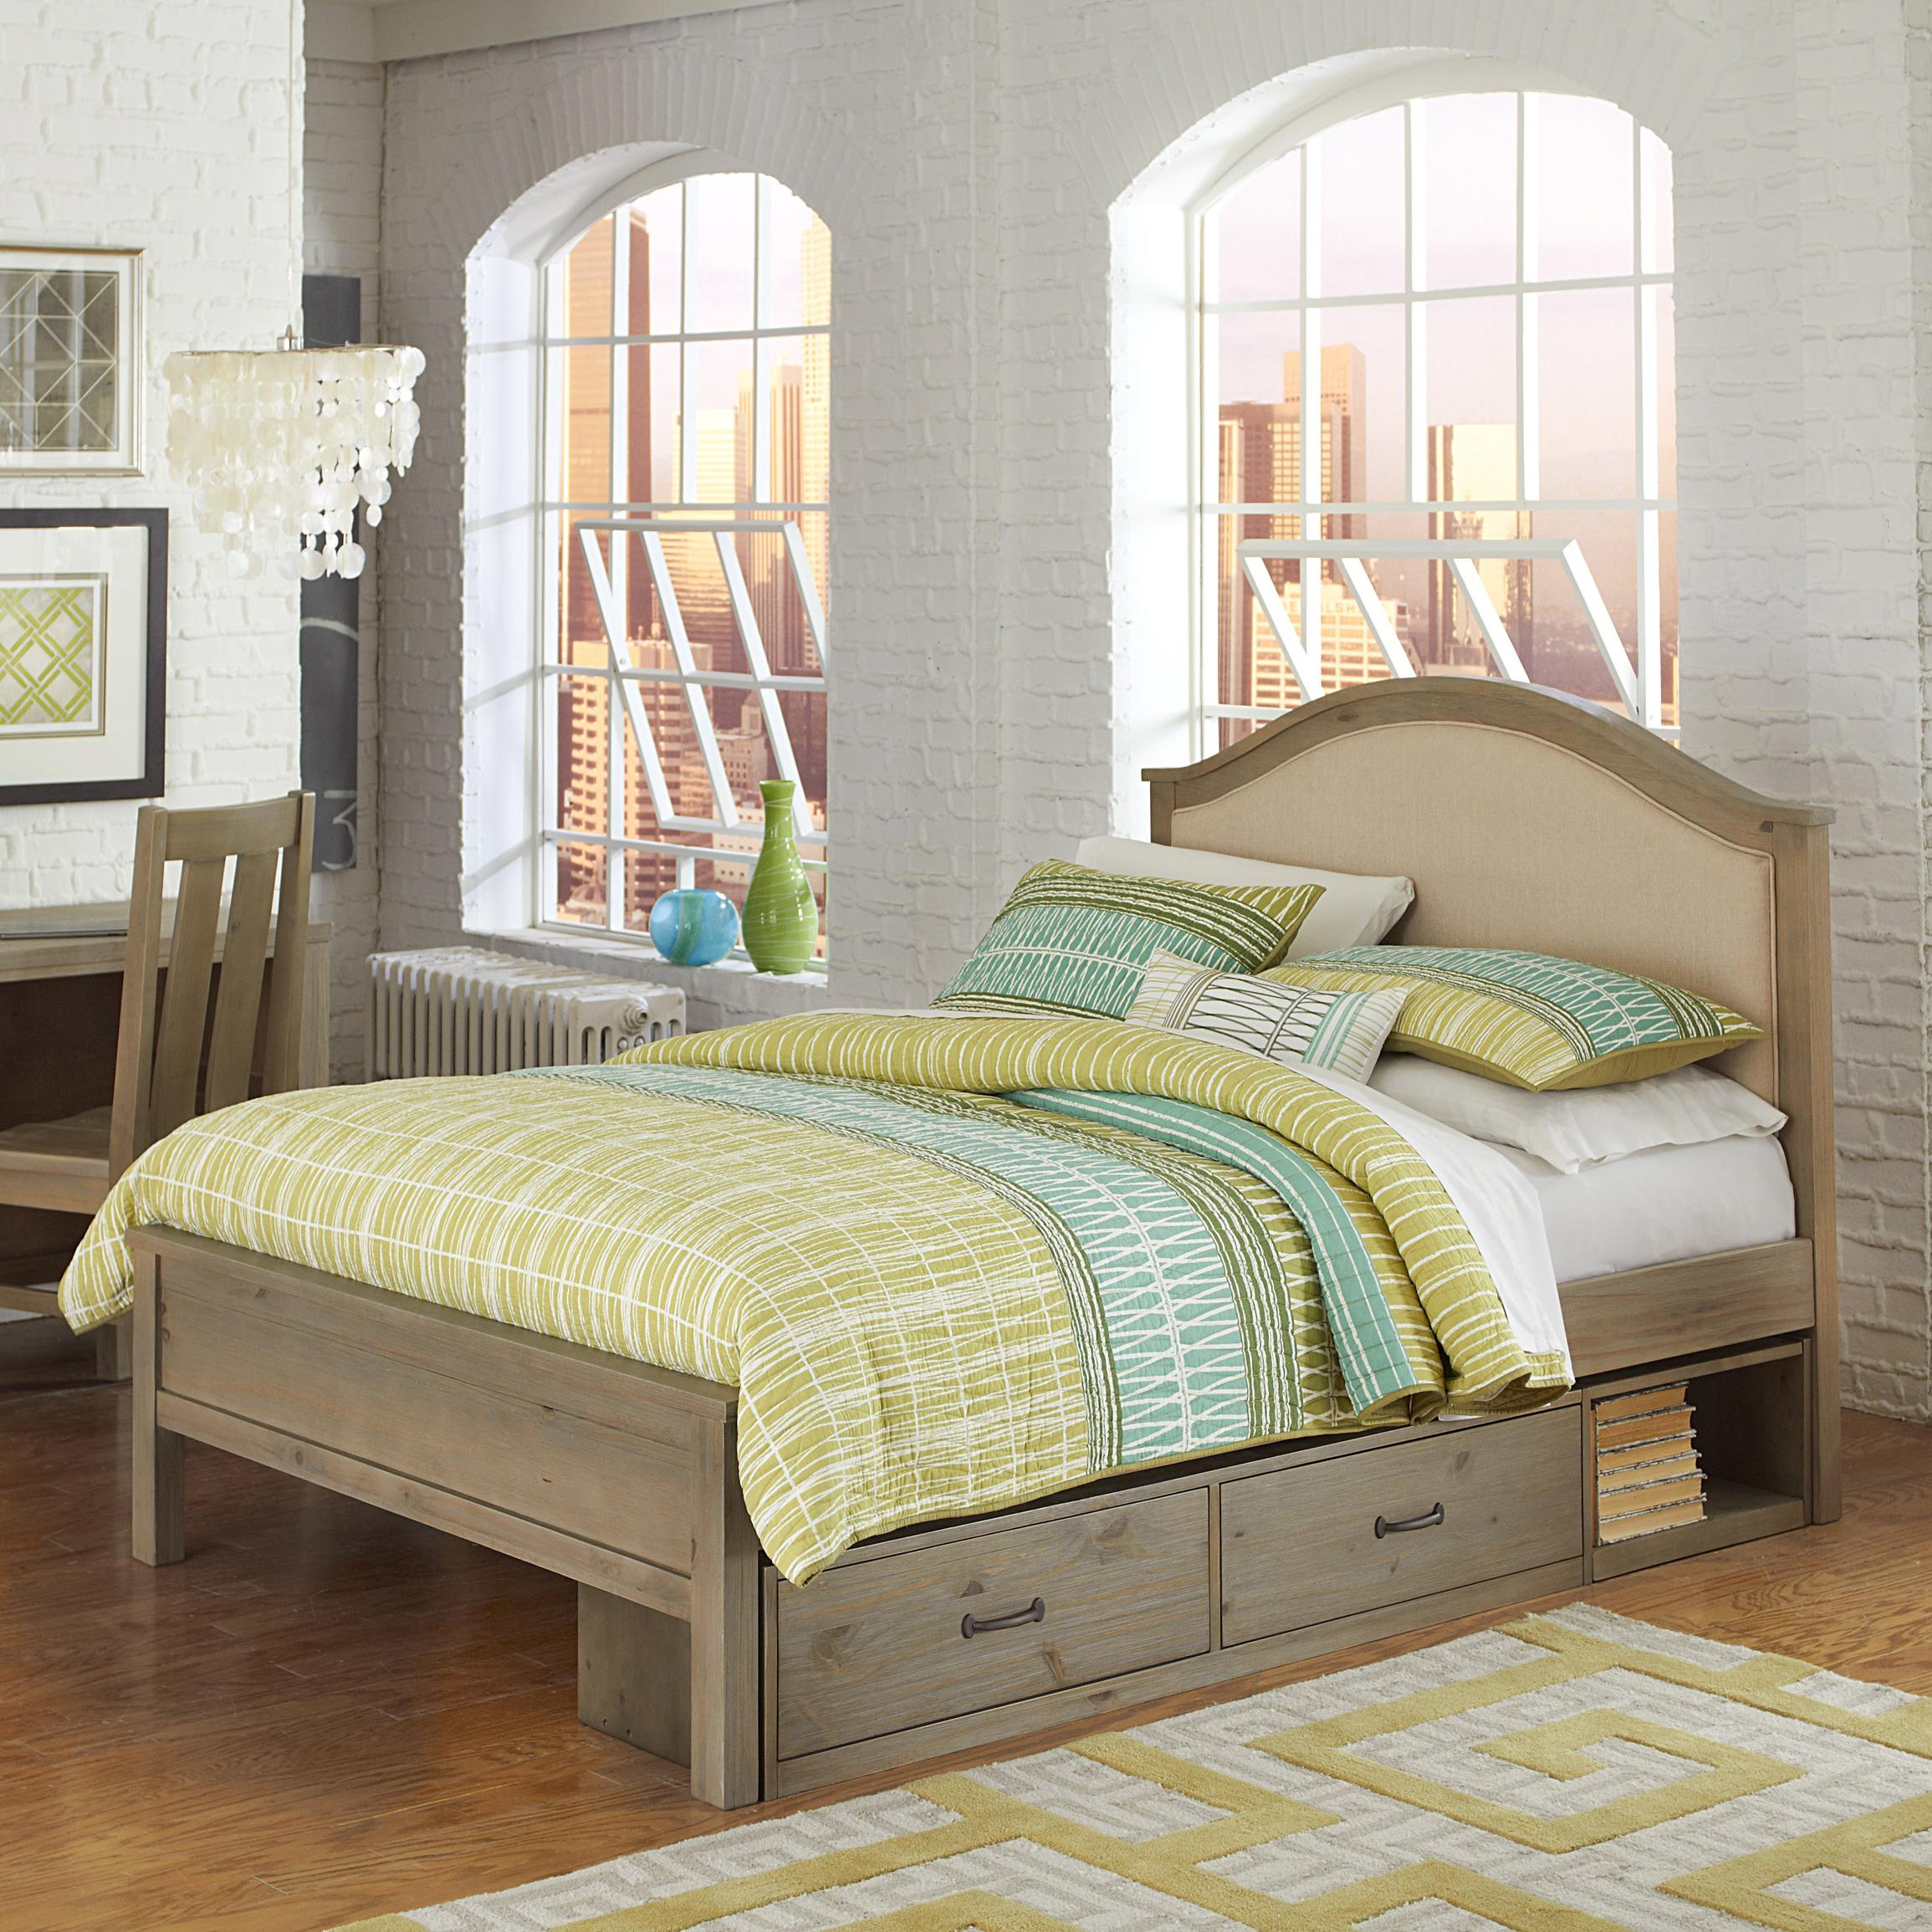 Highlands Full Bailey Upholstered Bed with Storage by NE Kids at Stoney Creek Furniture